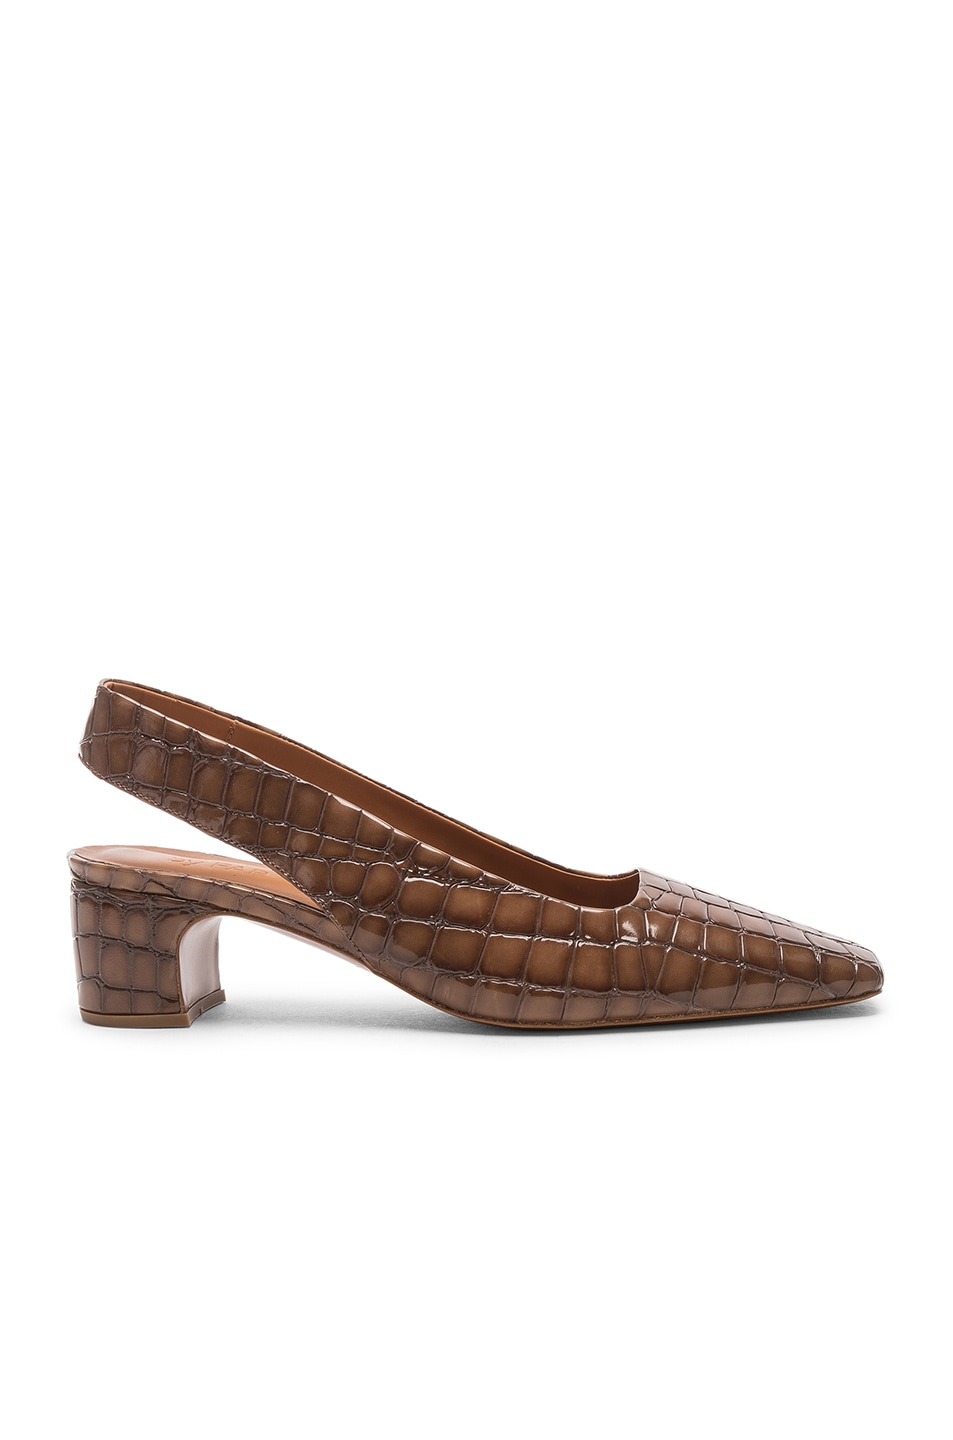 Image 1 of BY FAR Danielle in Brown Croc Embossed Patent